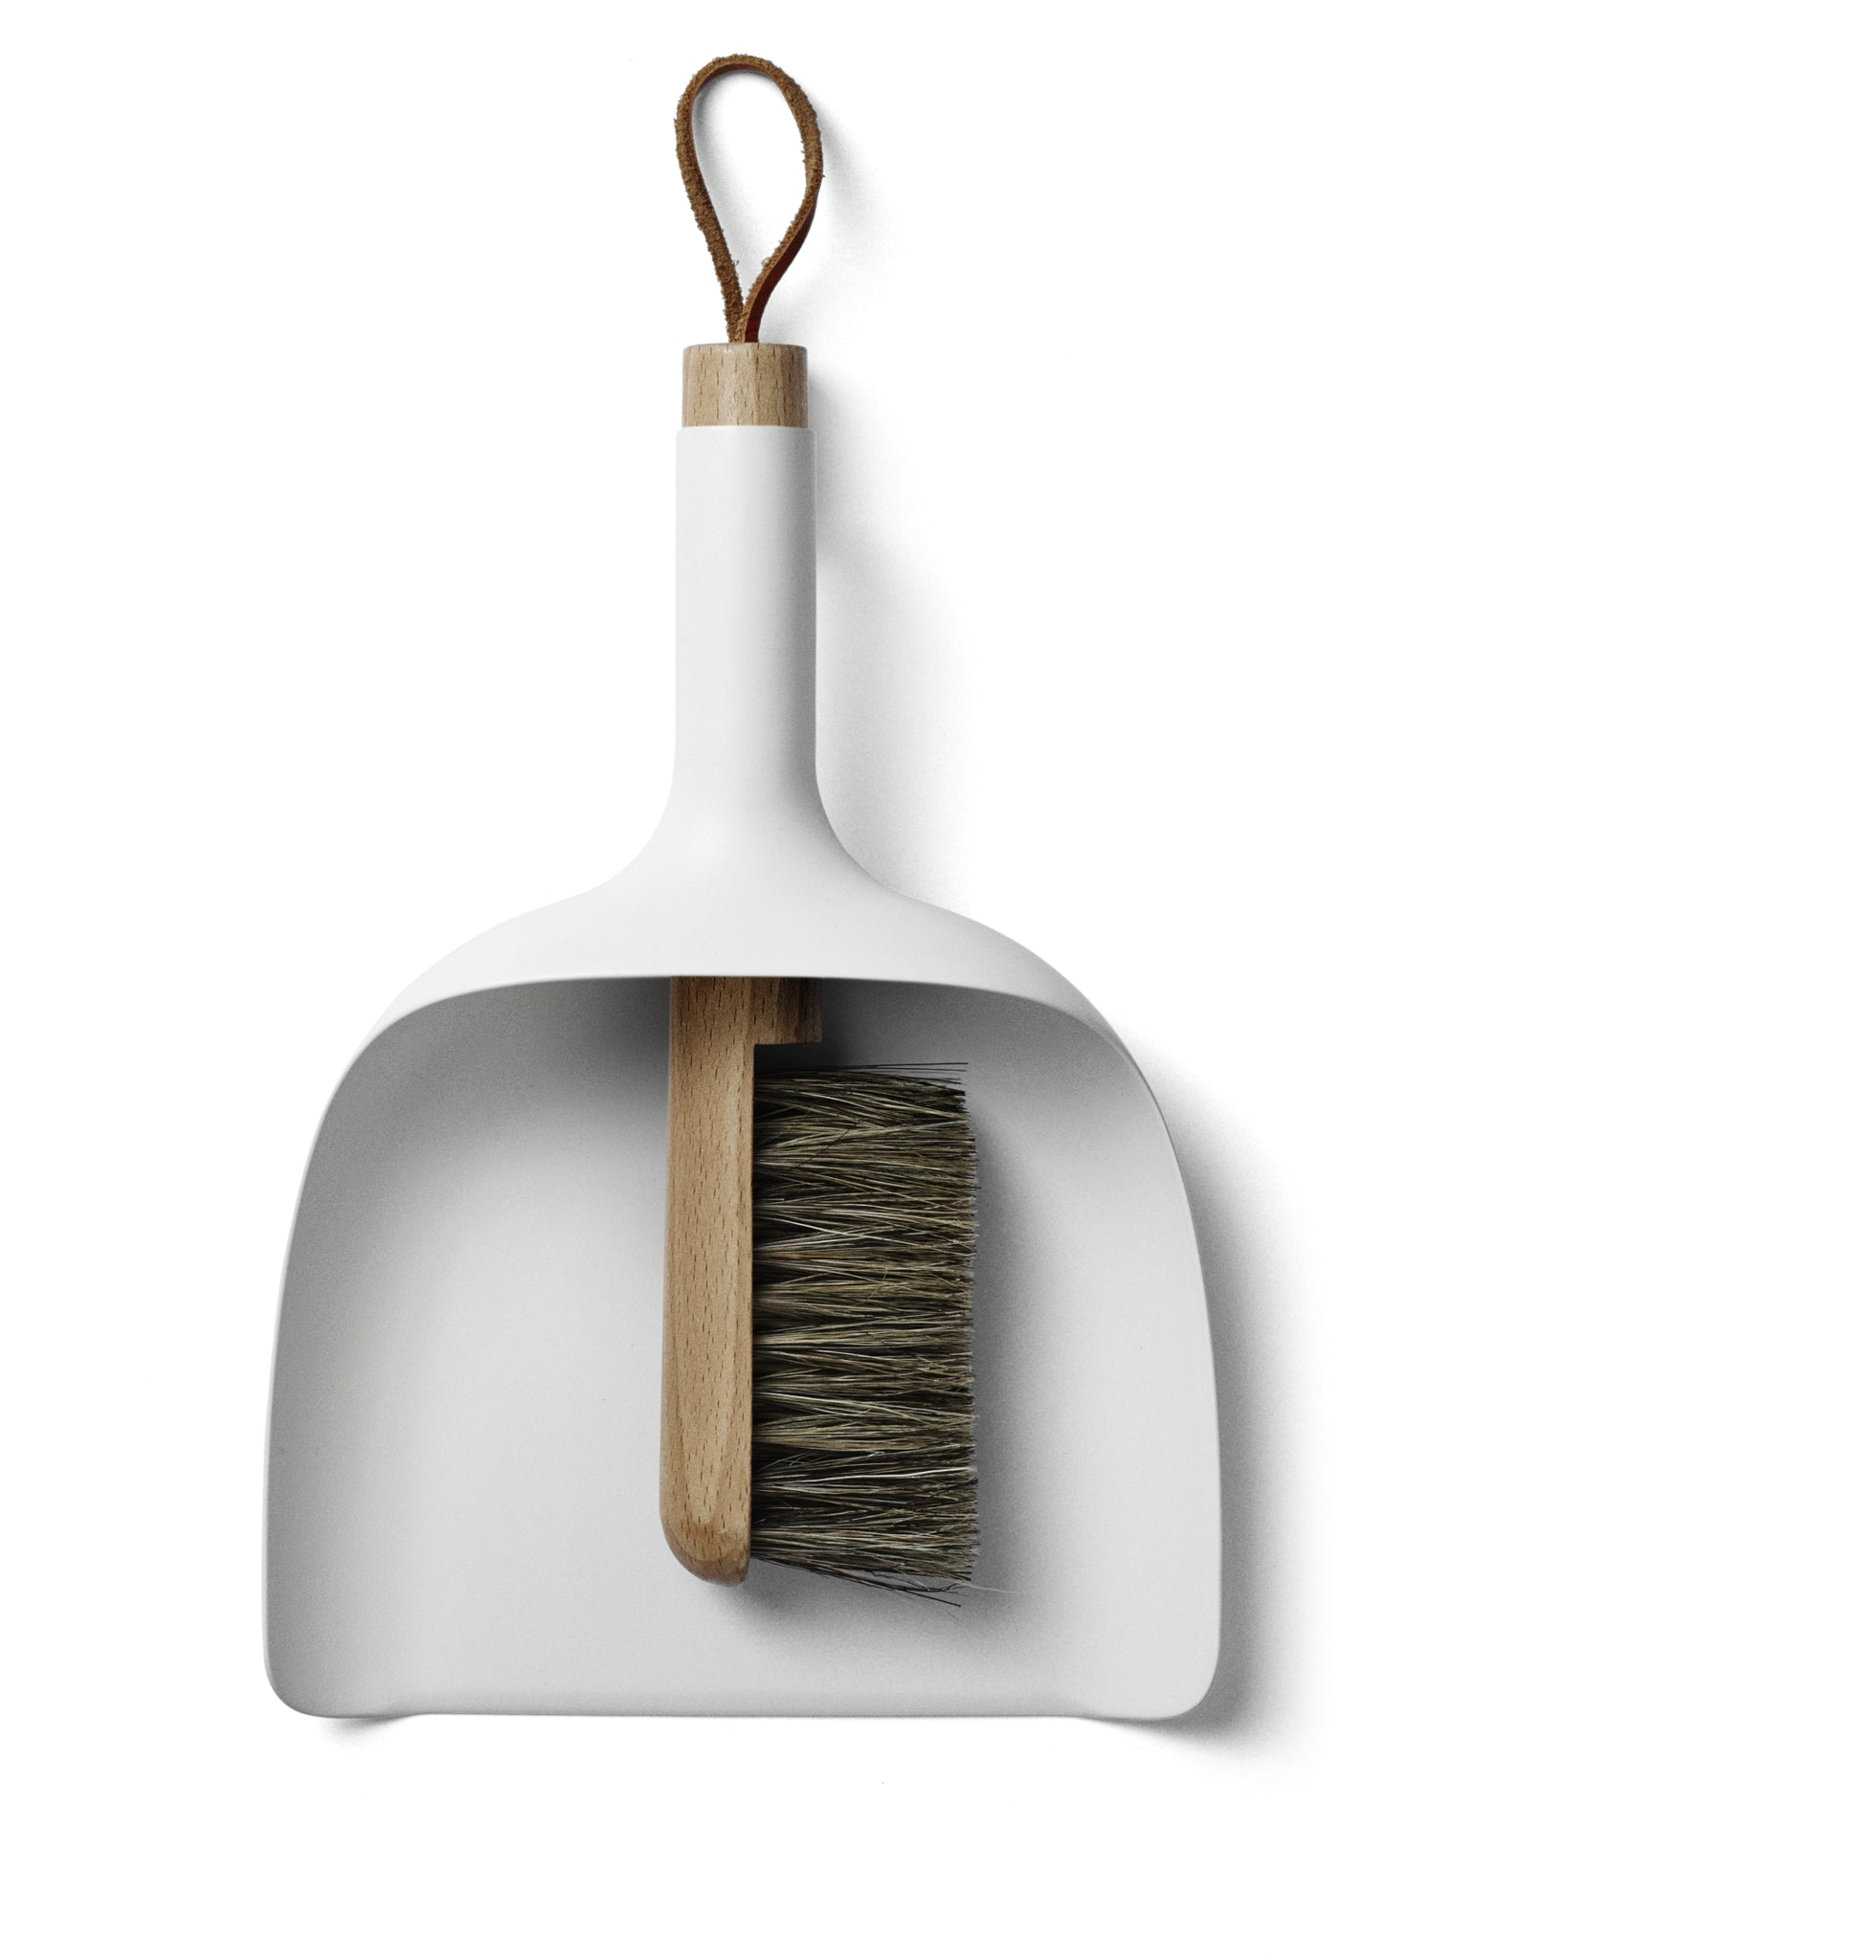 Zmiotka Sweeper & Funnel | Menu | Designzoo